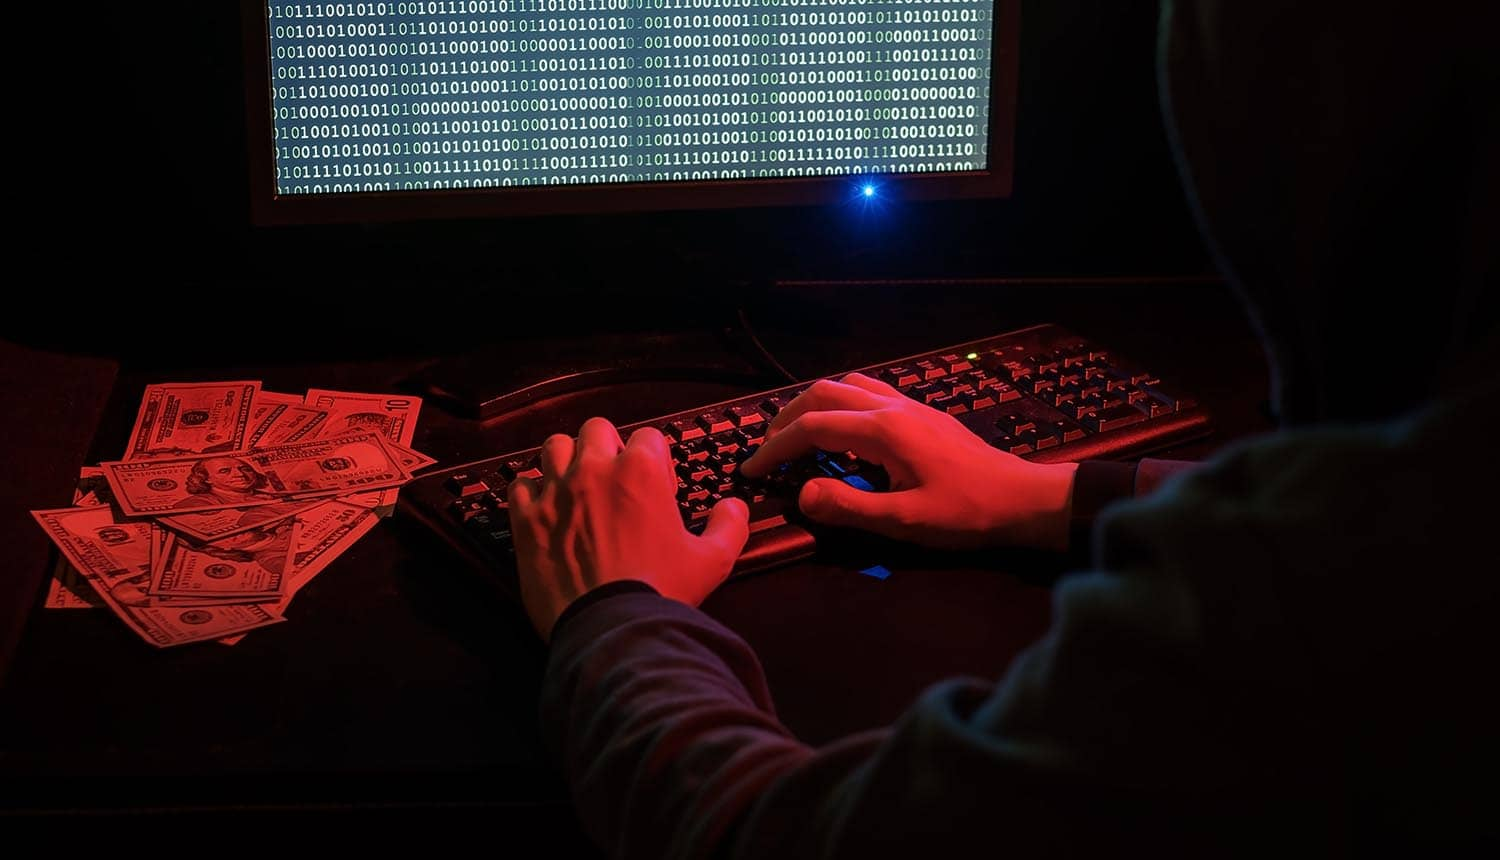 Man in hood working on computer next to pile of cash showing the financial impact of phishing scam